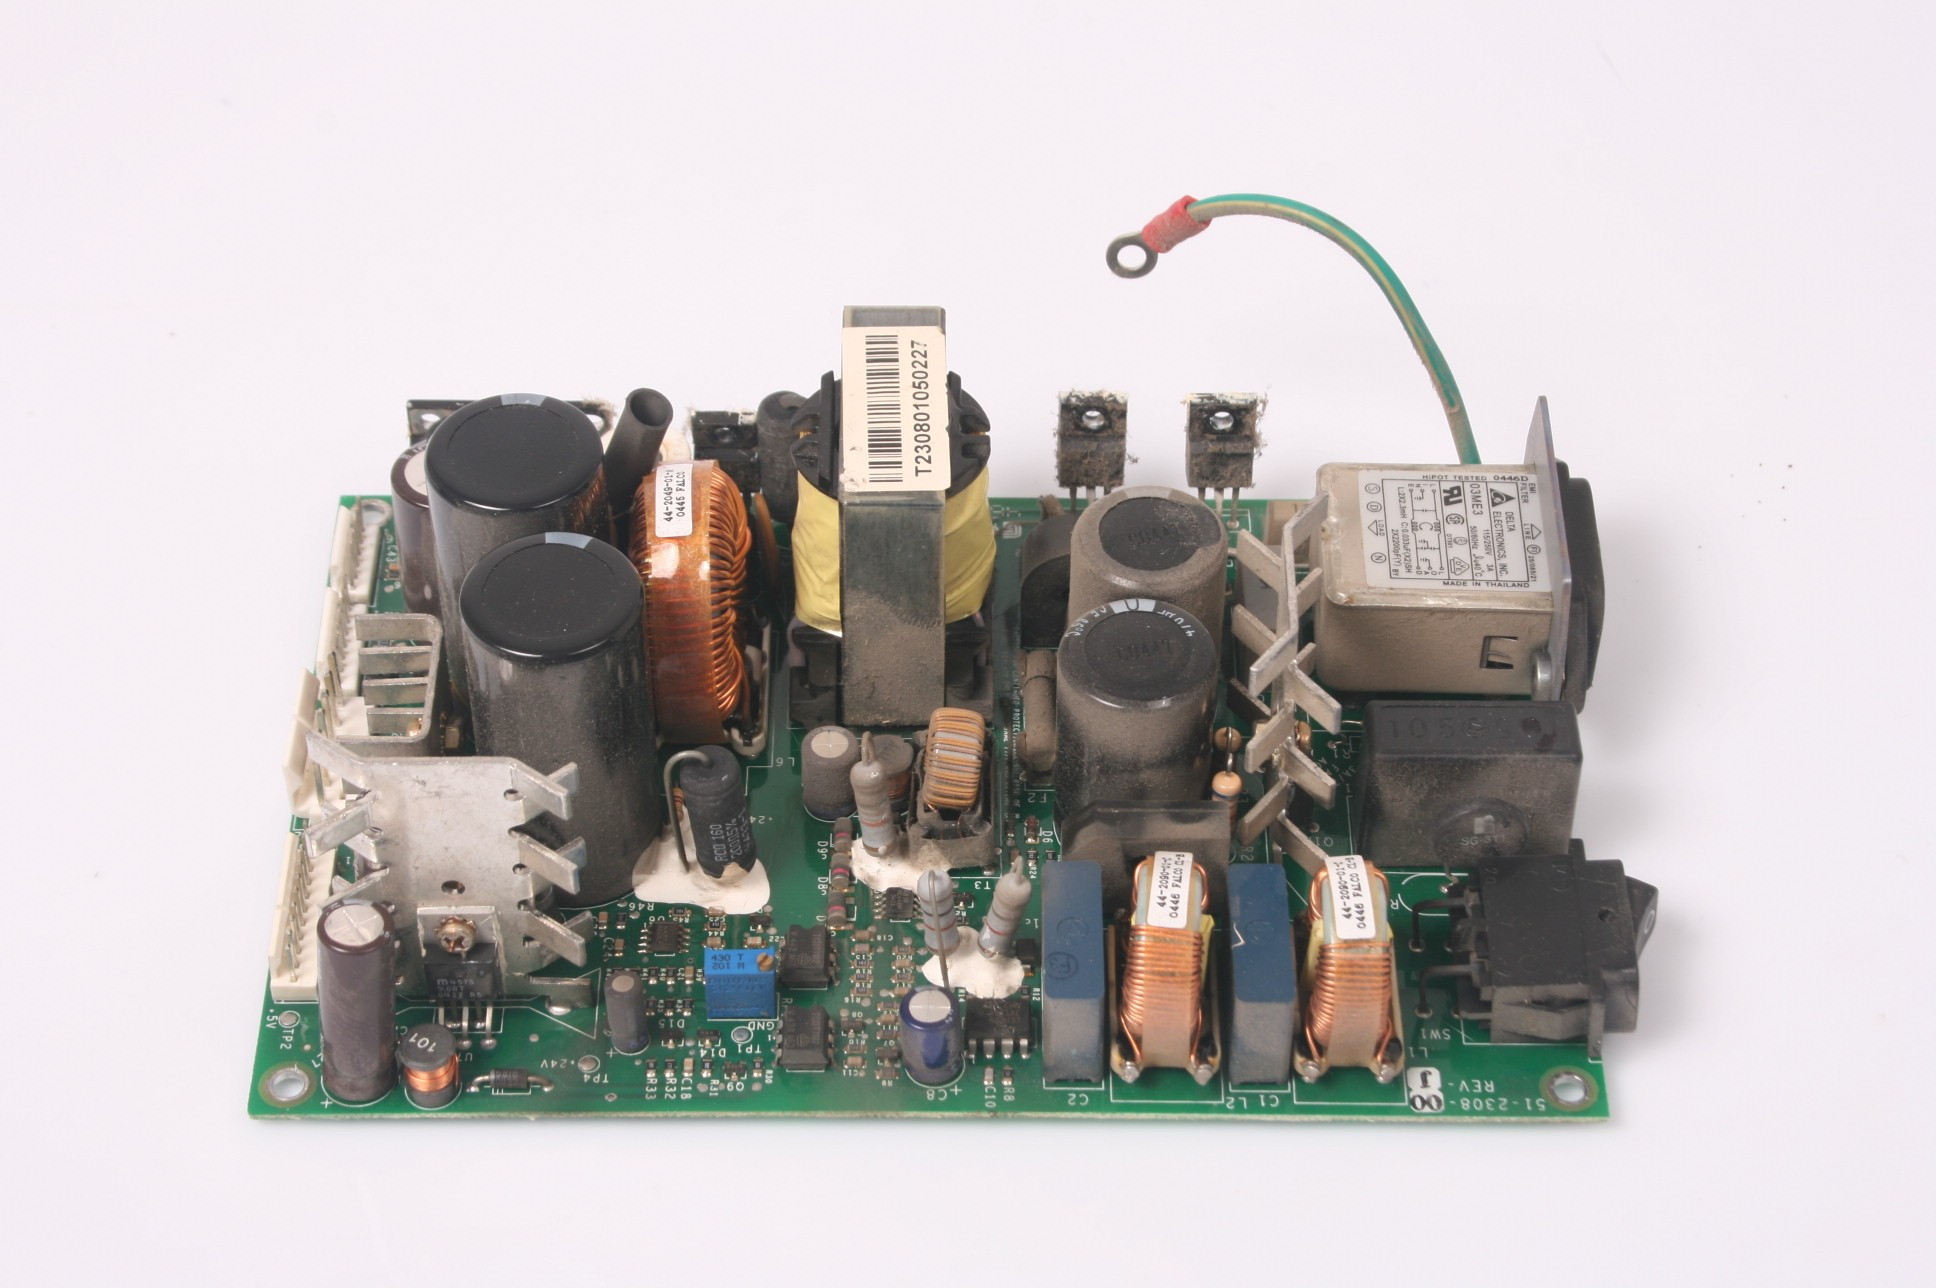 DATAMAX 51-2308-00 POWER SUPPLY, I-CLASS Refurbished